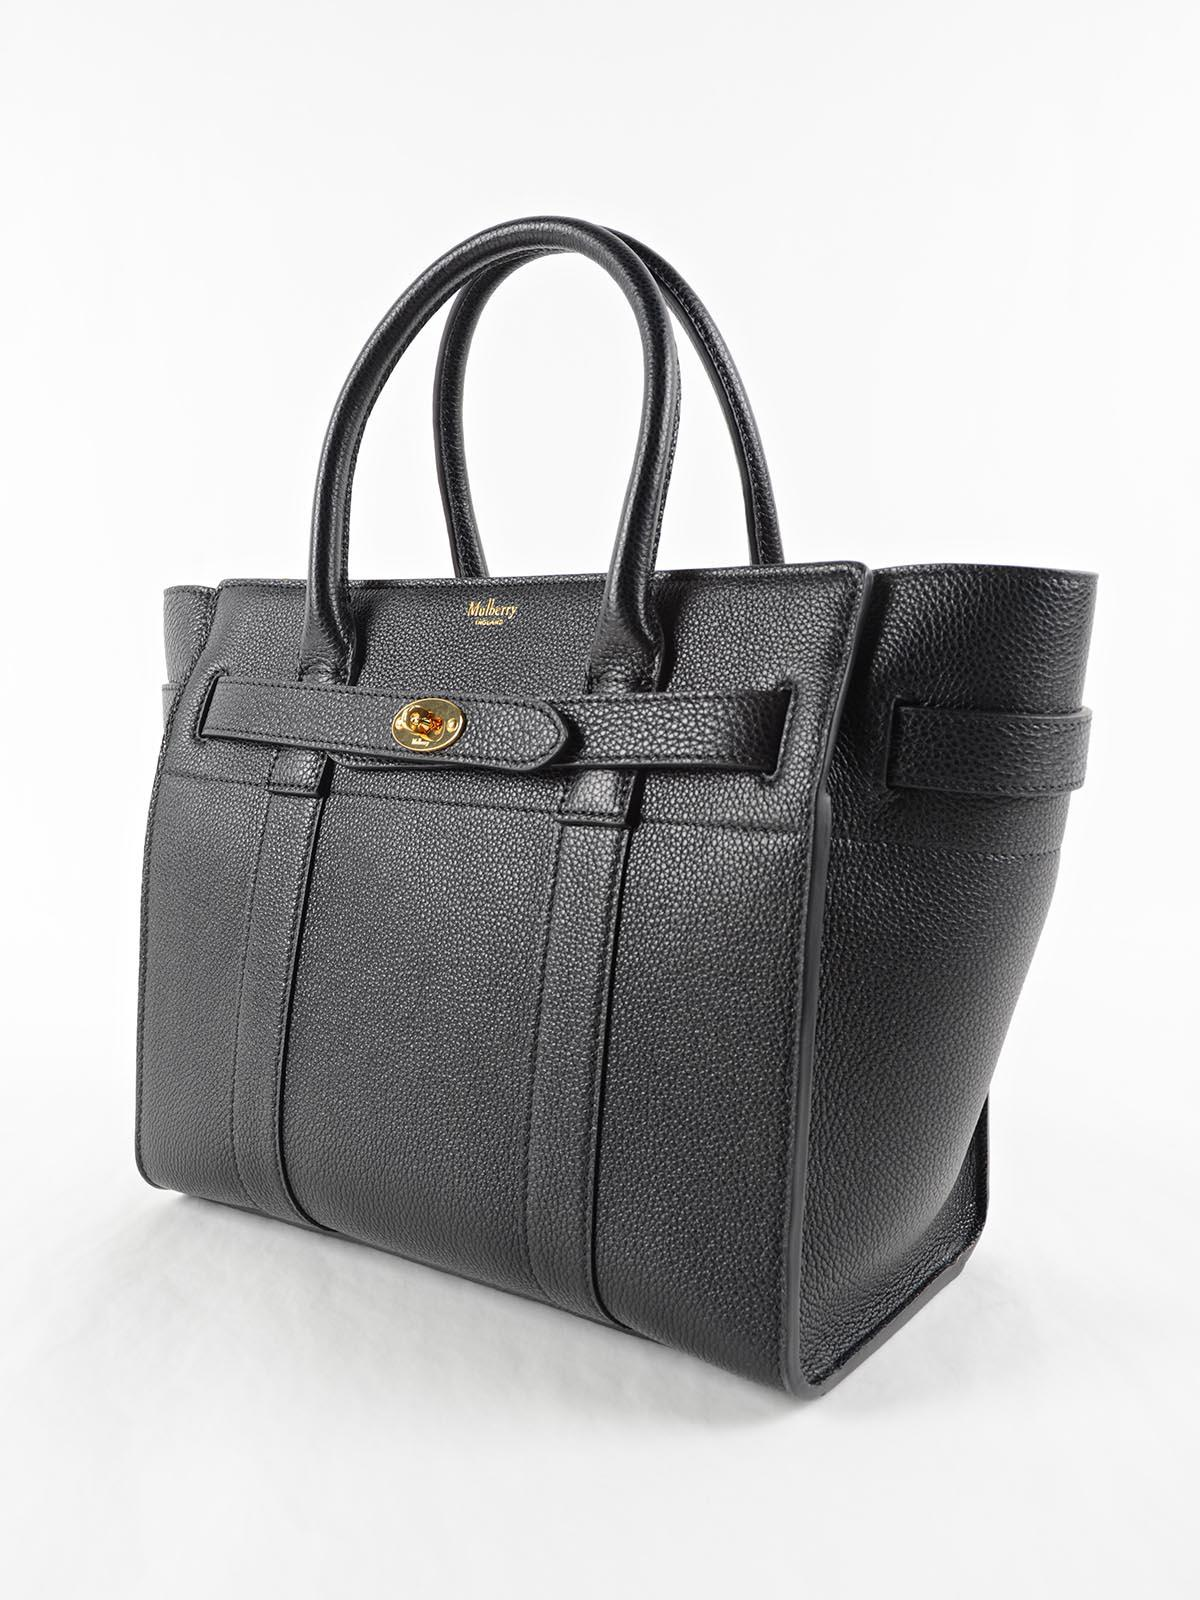 a69664c036b6 Mulberry Small Zip Bayswater Bag in Black - Lyst